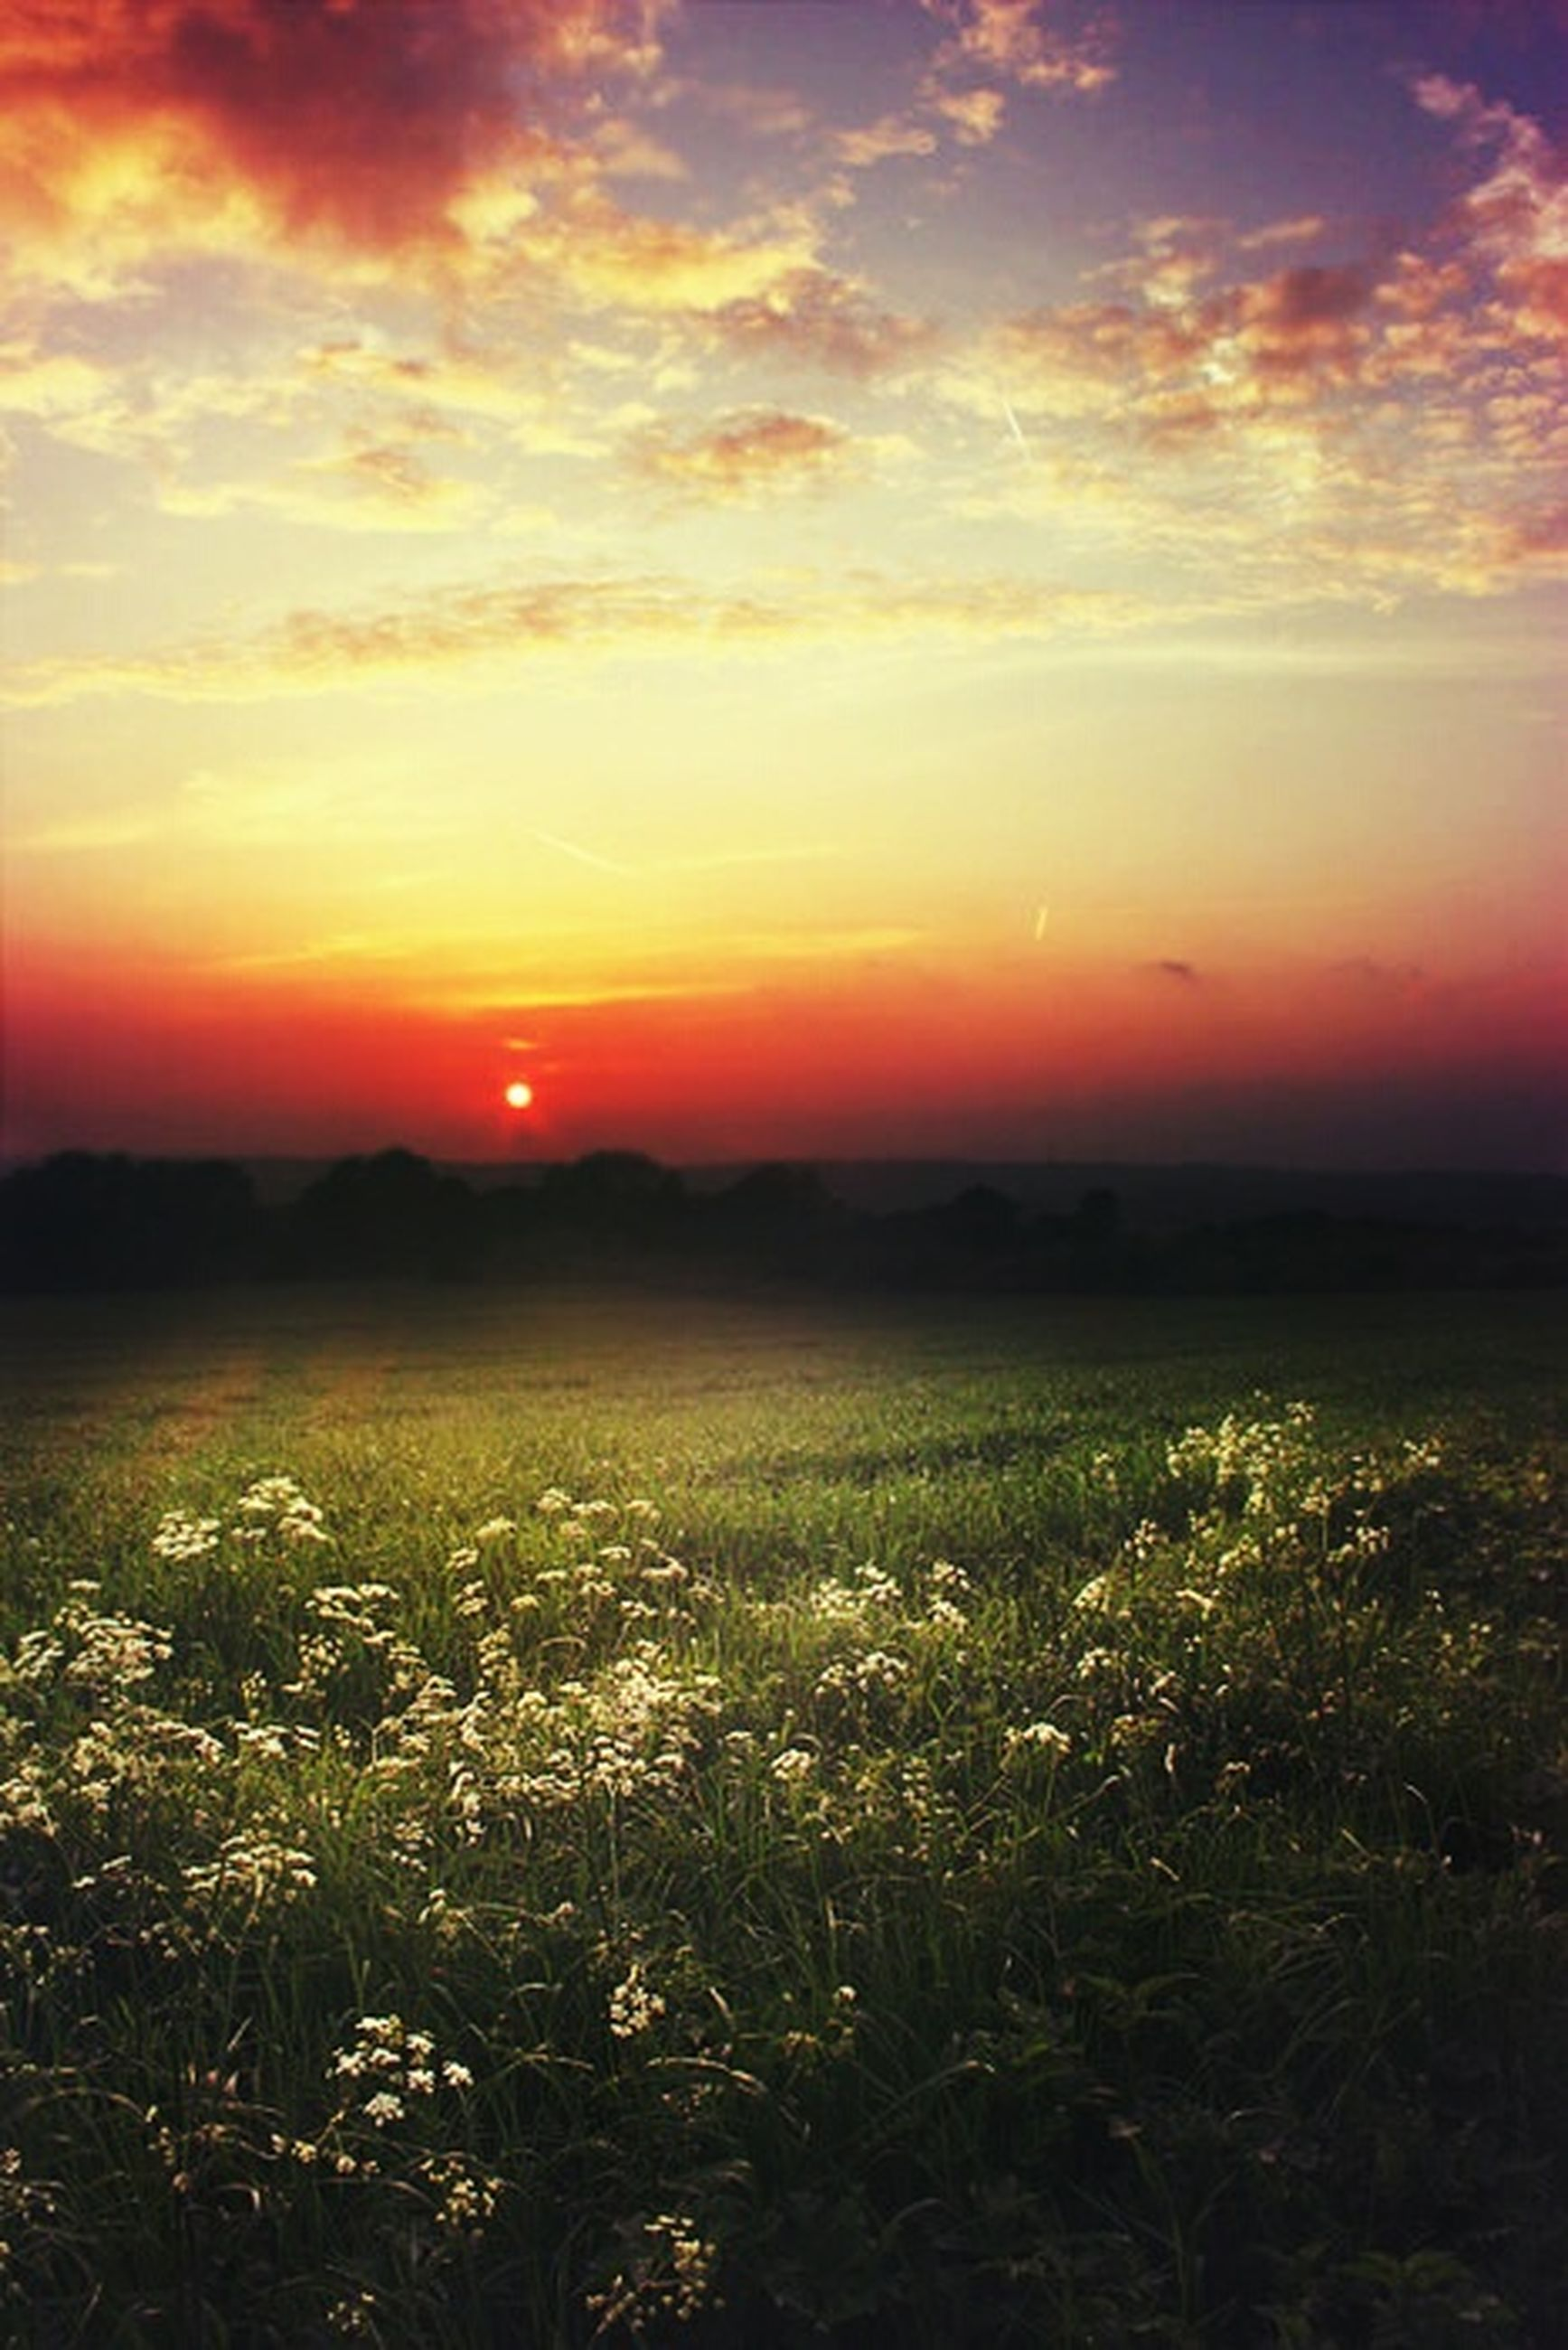 sunset, beauty in nature, tranquil scene, scenics, sky, tranquility, orange color, nature, field, sun, growth, landscape, idyllic, plant, cloud - sky, flower, silhouette, outdoors, cloud, no people